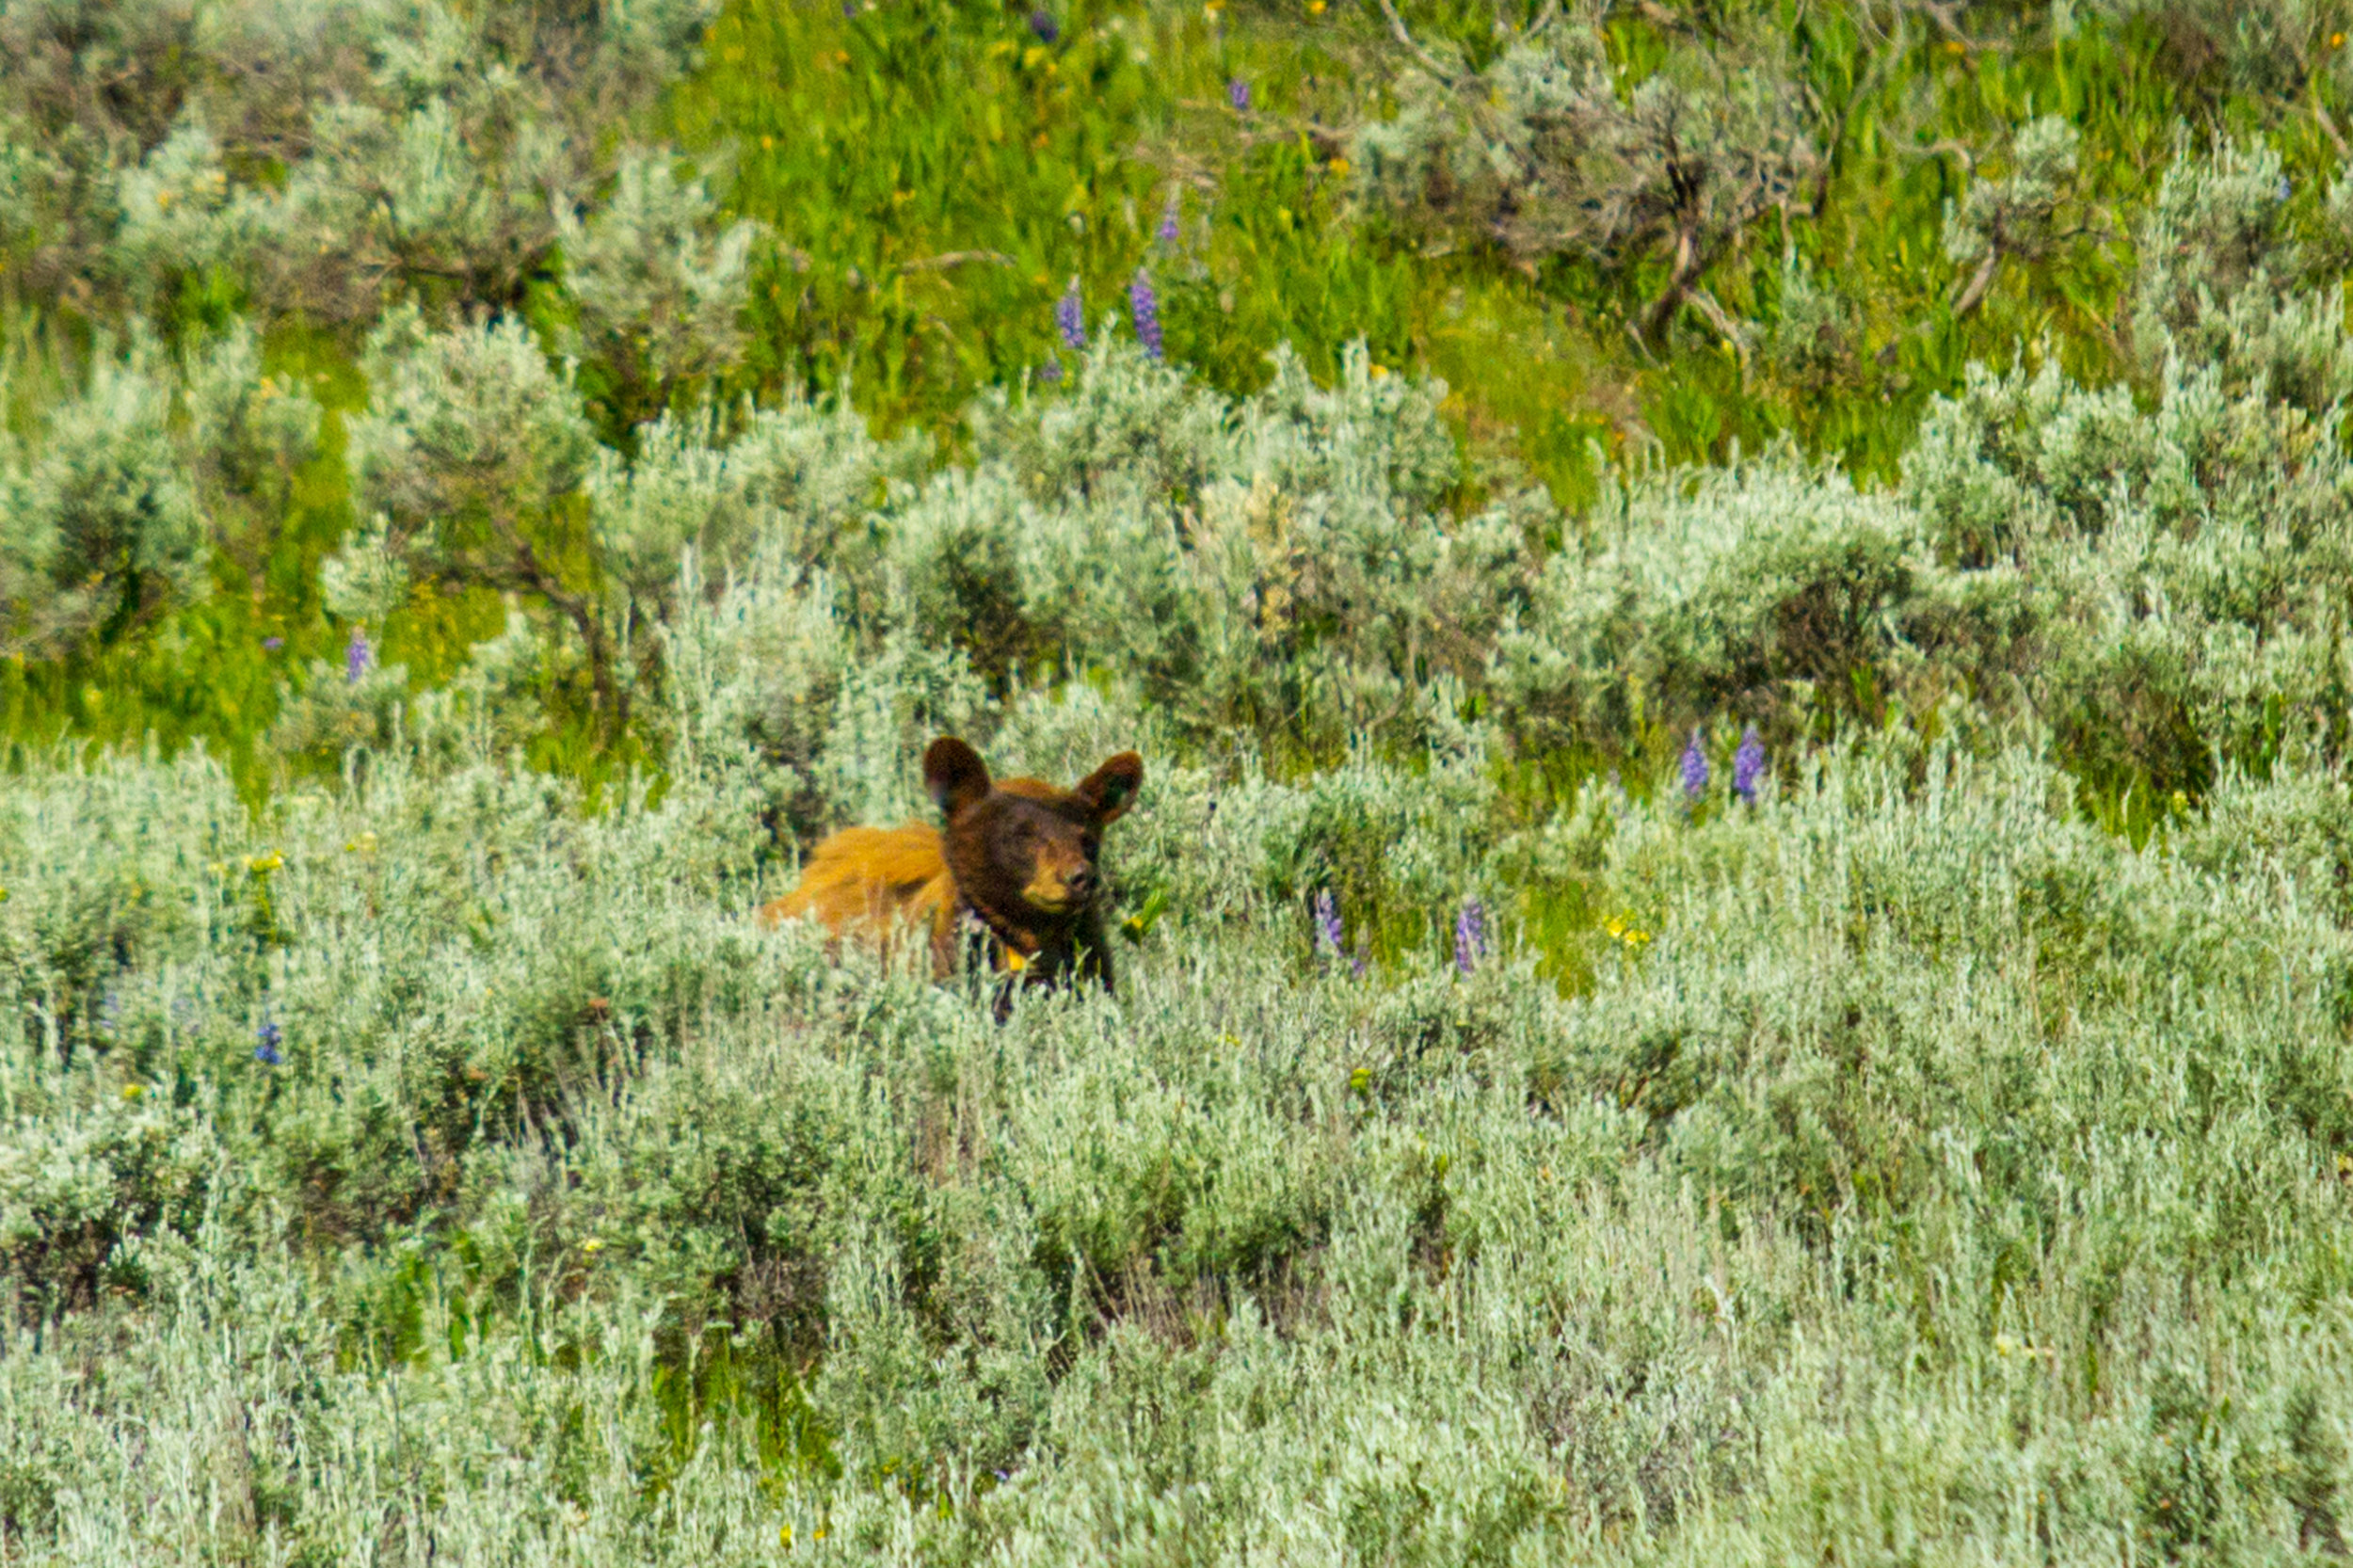 Lamar Valley, Yellowstone National Park, Image # 5161